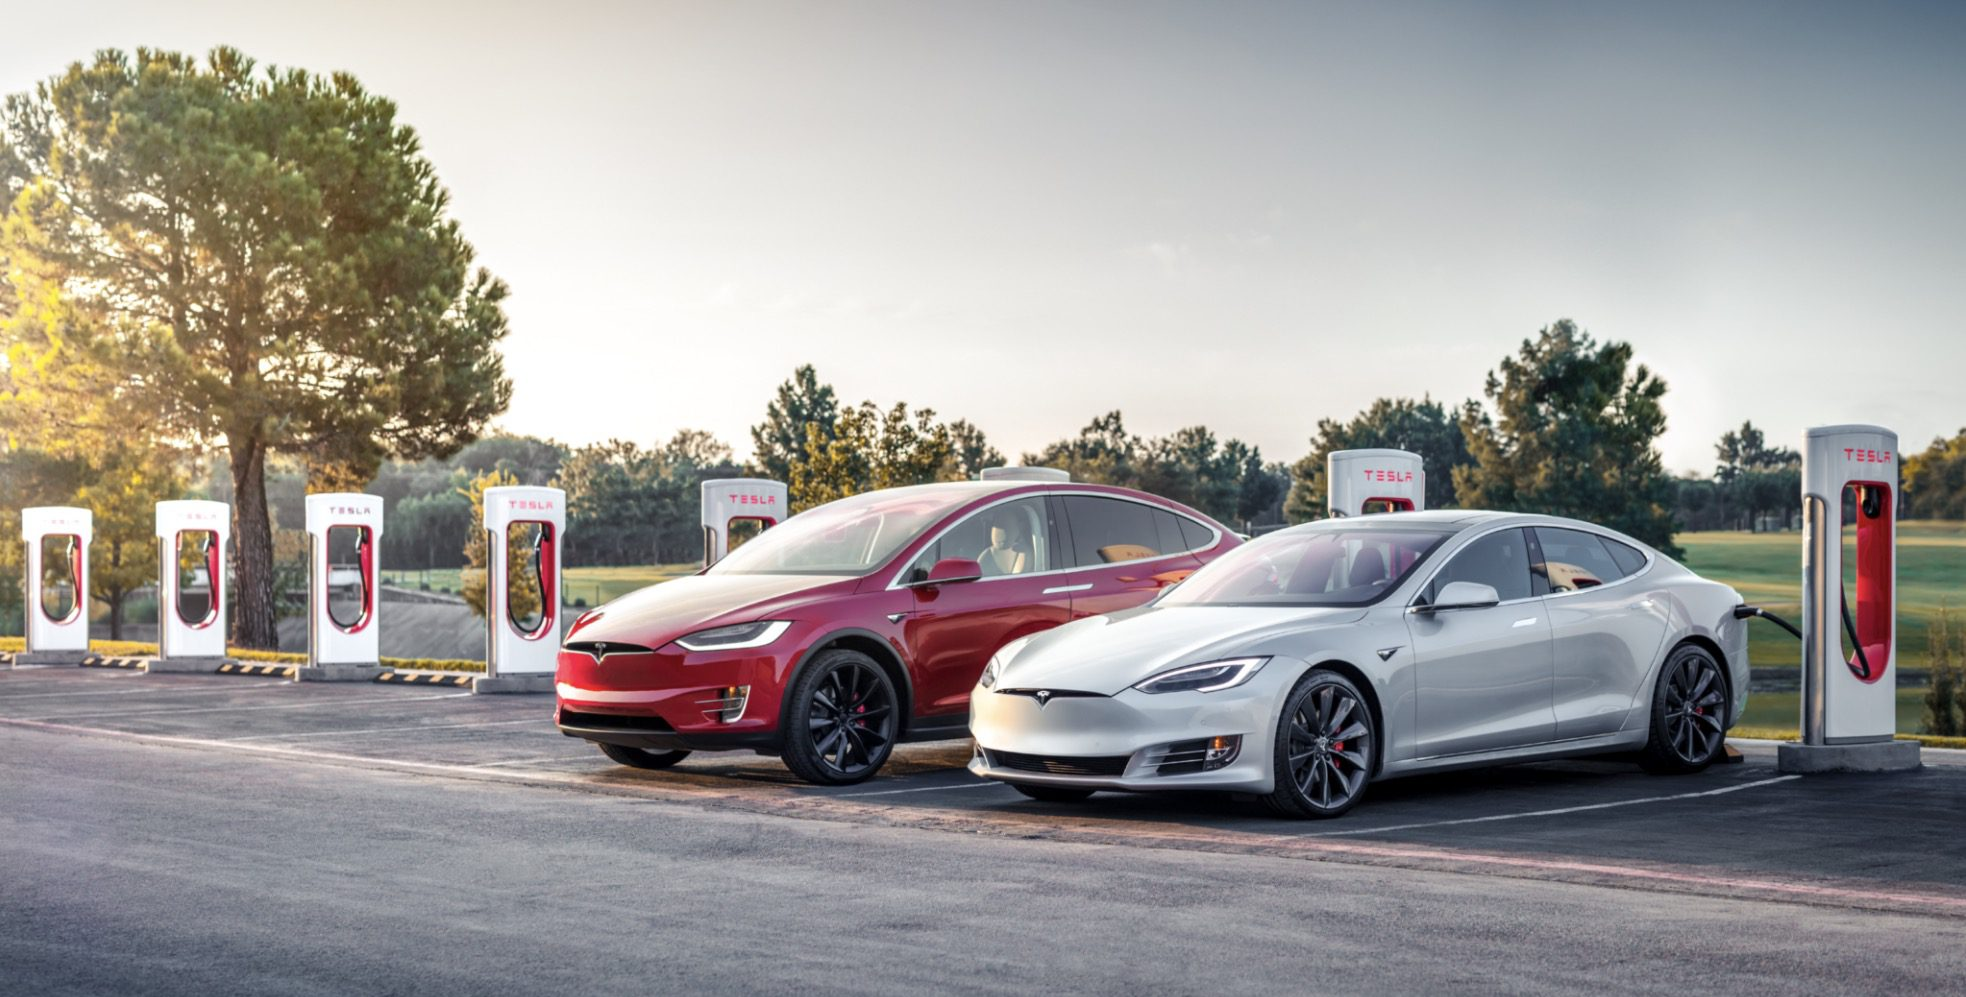 Tesla is ending the free unlimited Supercharging era today – what does it mean?